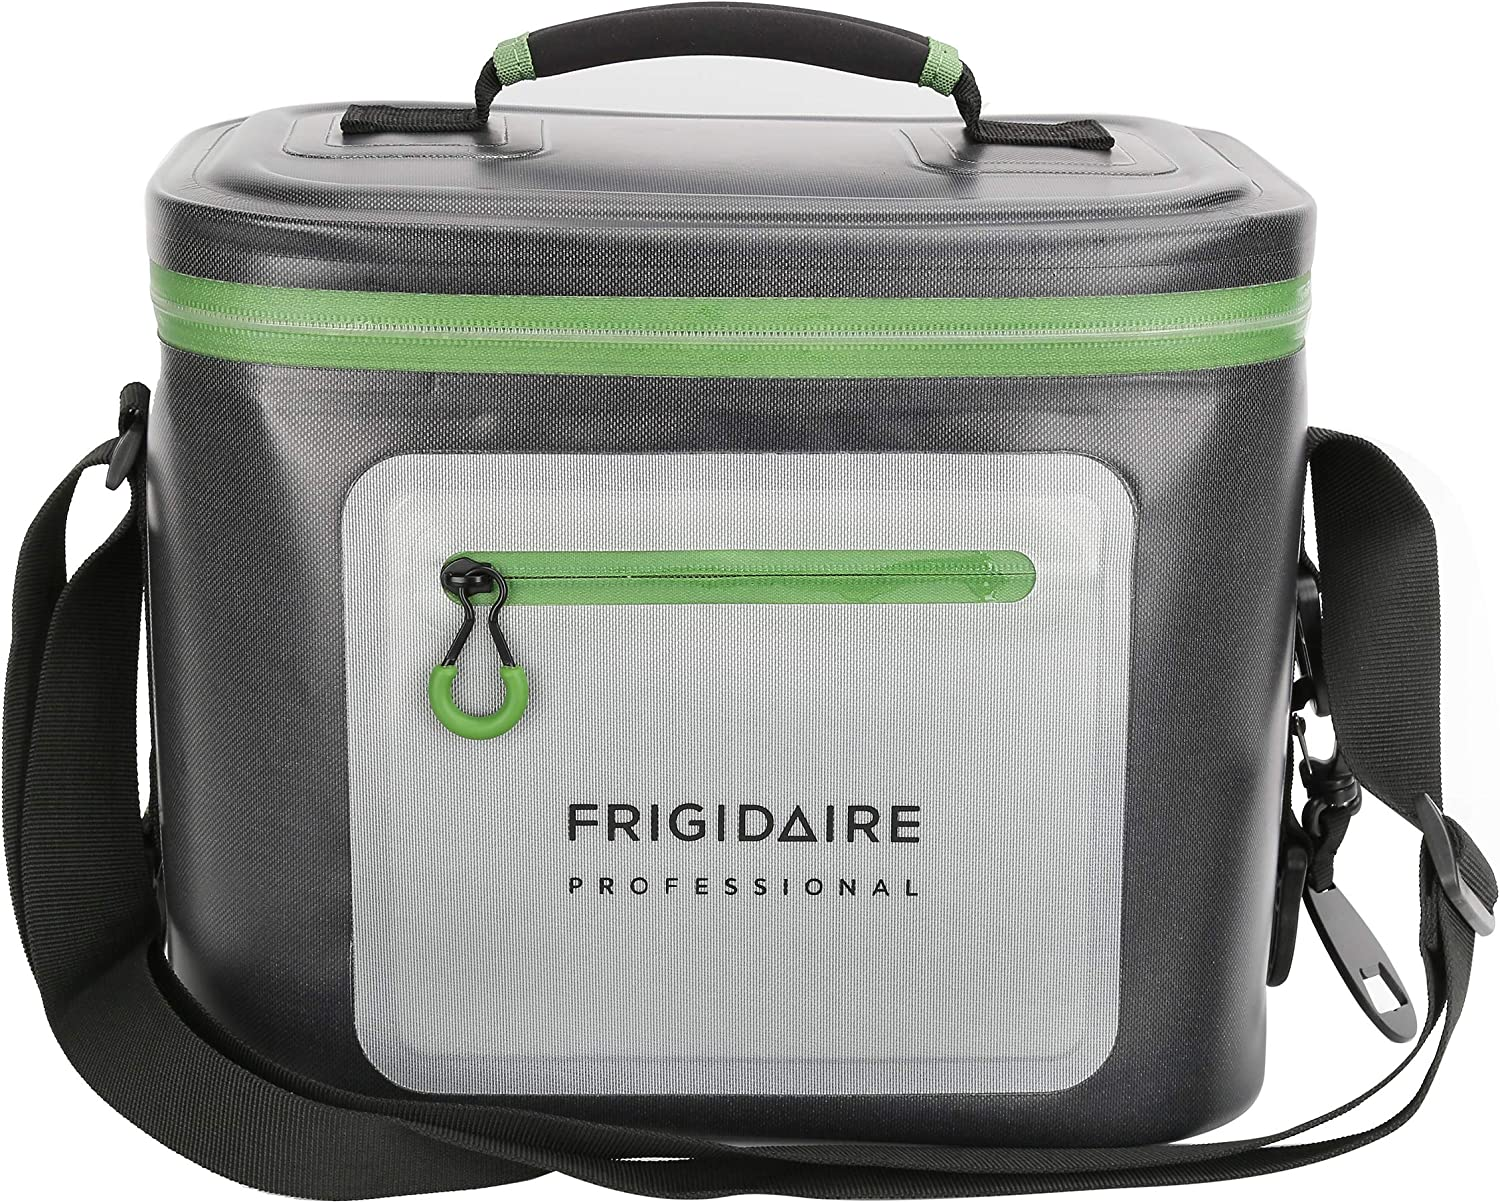 FRIGIDAIRE Professional 12-Can Welded Cooler